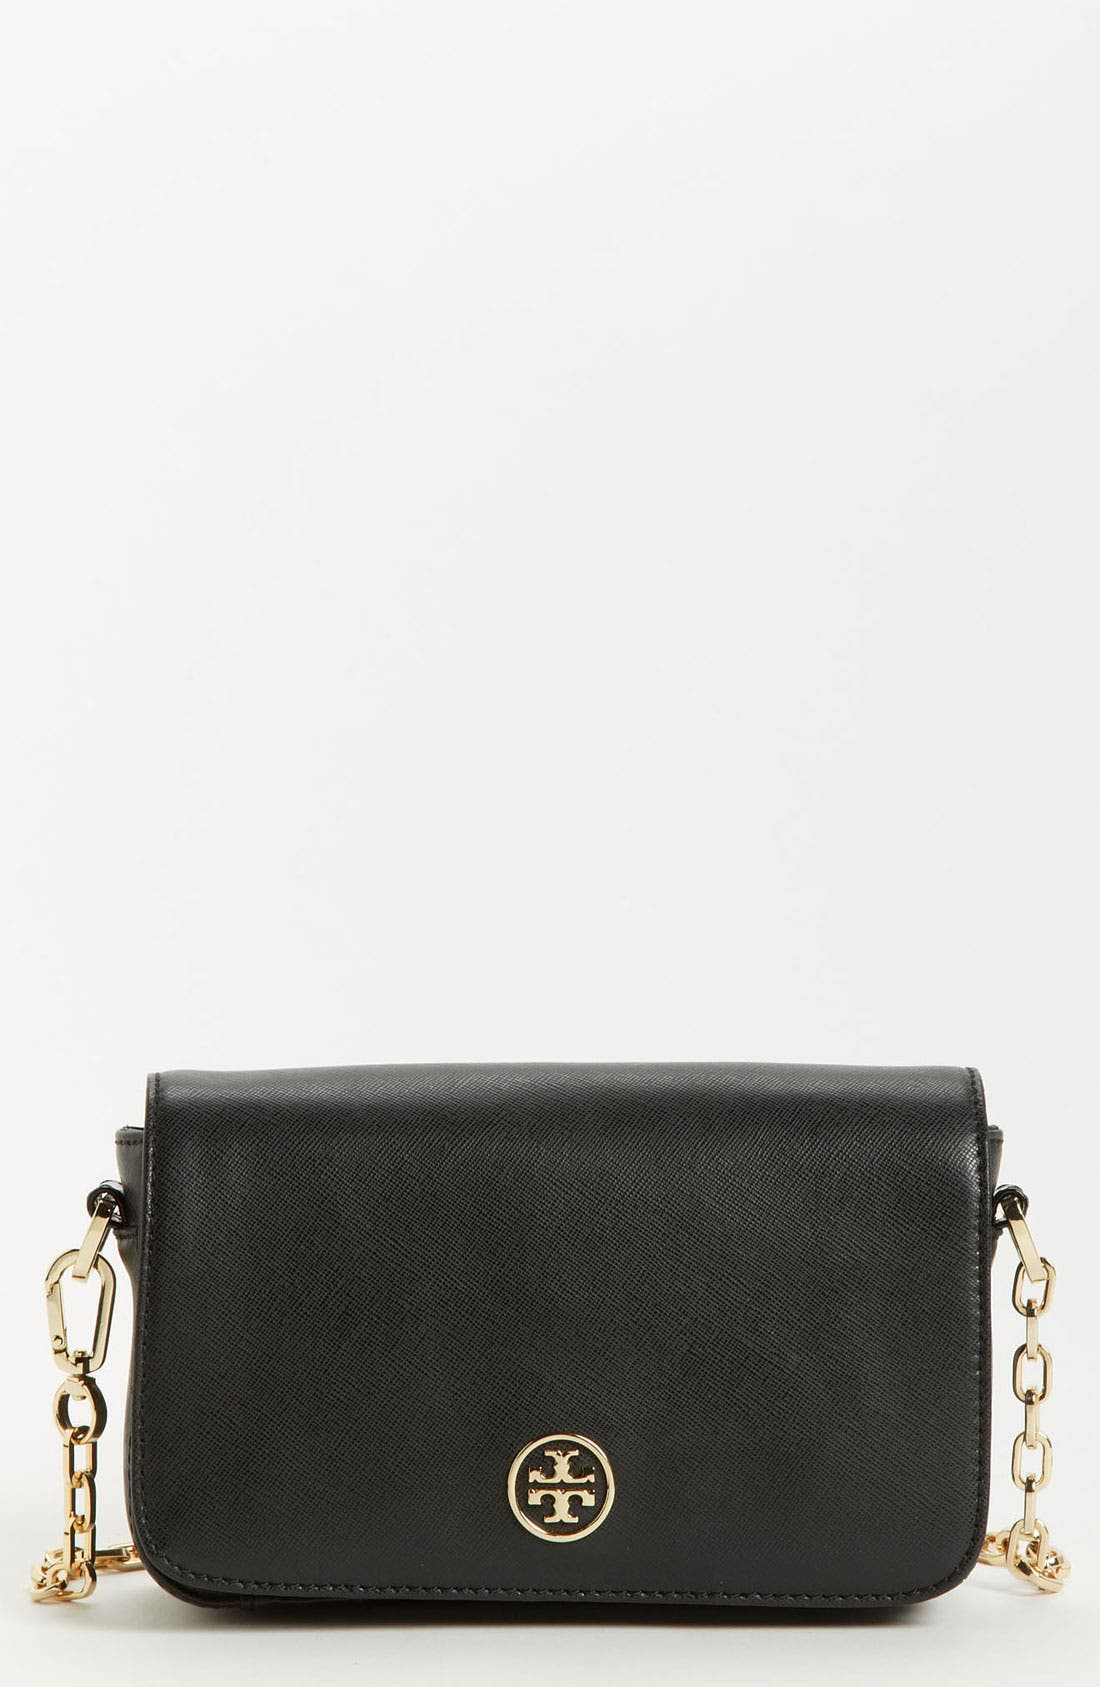 Alternate Image 1 Selected - Tory Burch 'Robinson - Mini' Saffiano Leather Crossbody Bag